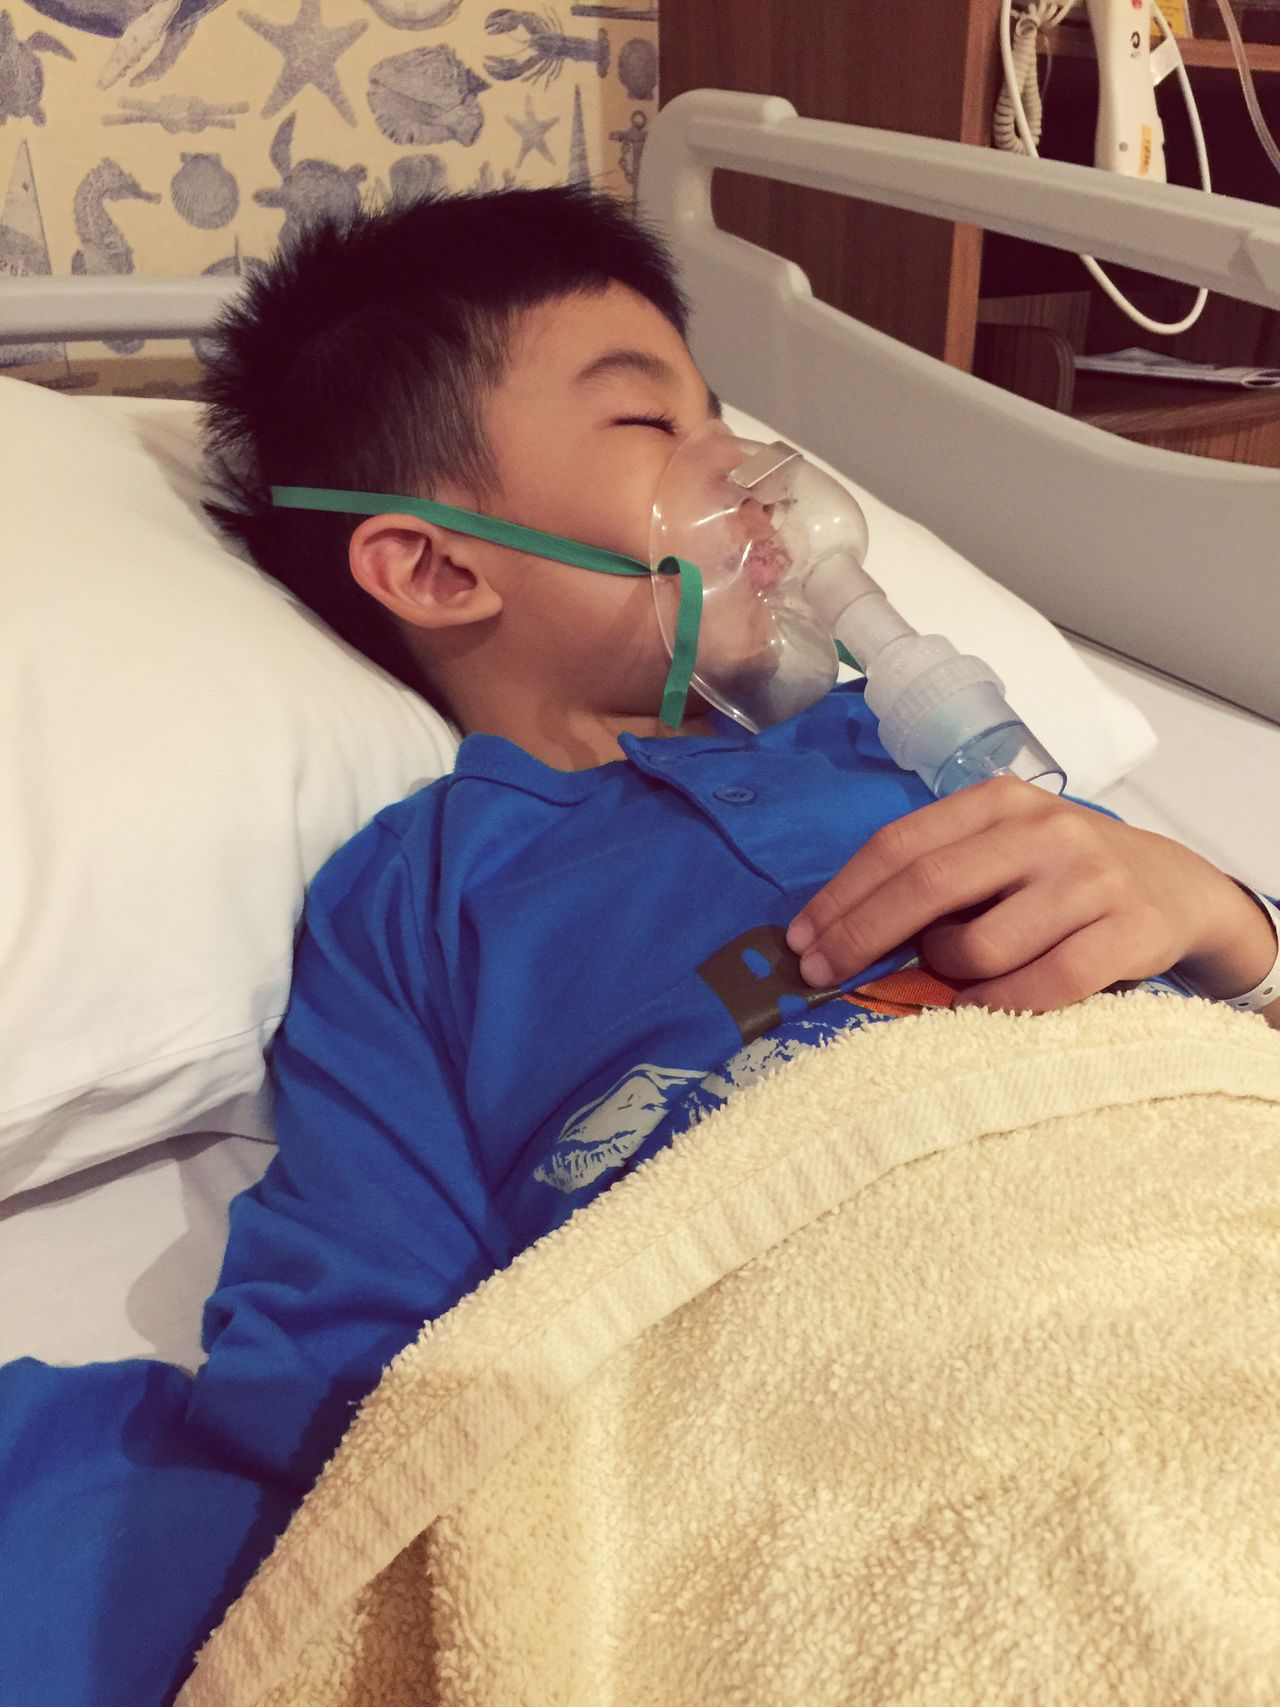 Sick day 😷 Healthcare And Medicine Childhood Bed Lying Down Nebulizer At The Hospital Hospital Ward Sick Day Sick Child Sick Child